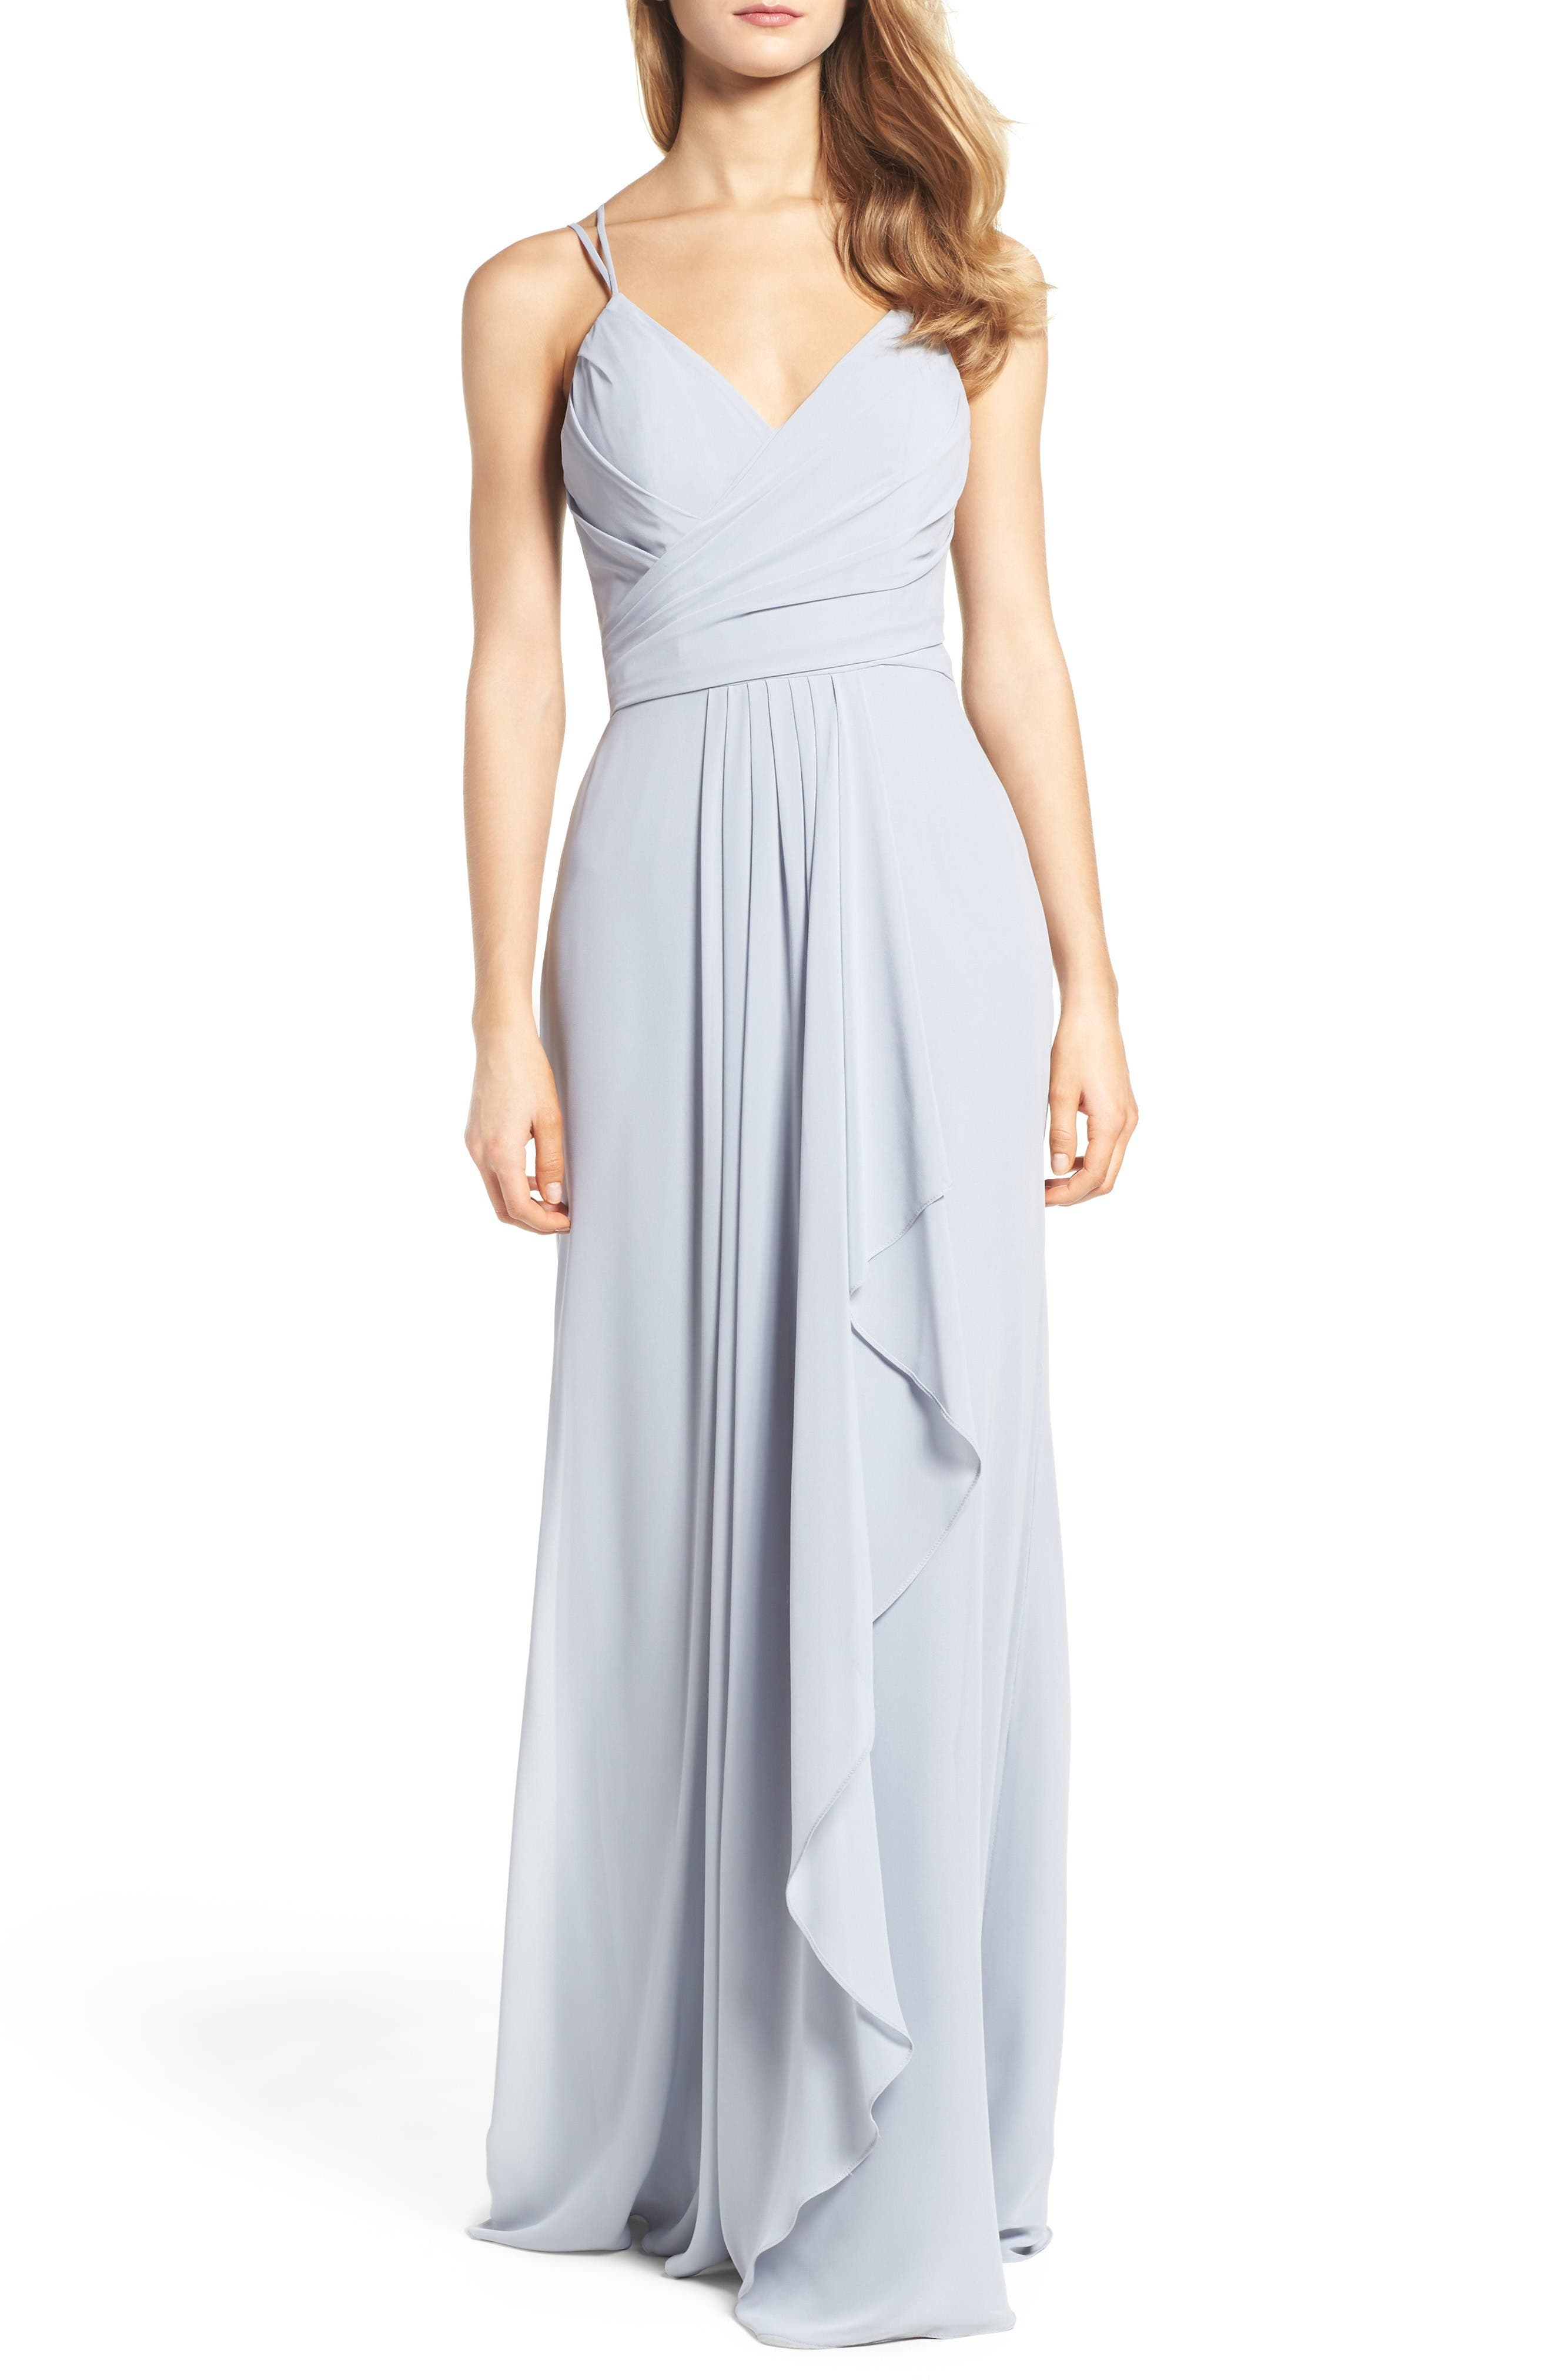 Main Image - Hayley Paige Occasions Chiffon Gown